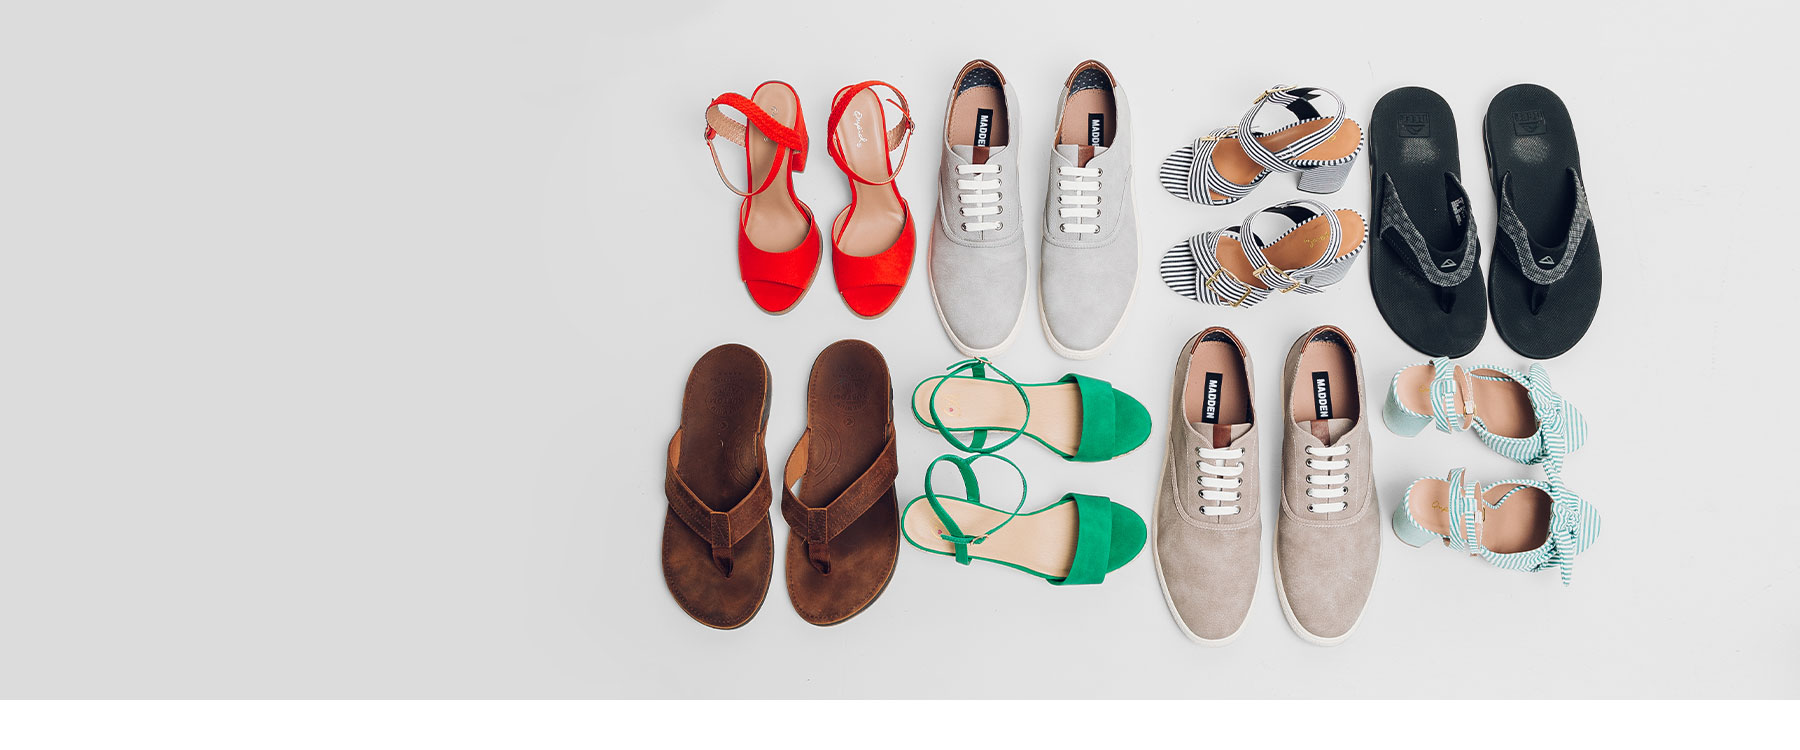 Eight pairs of men's and women's shoes